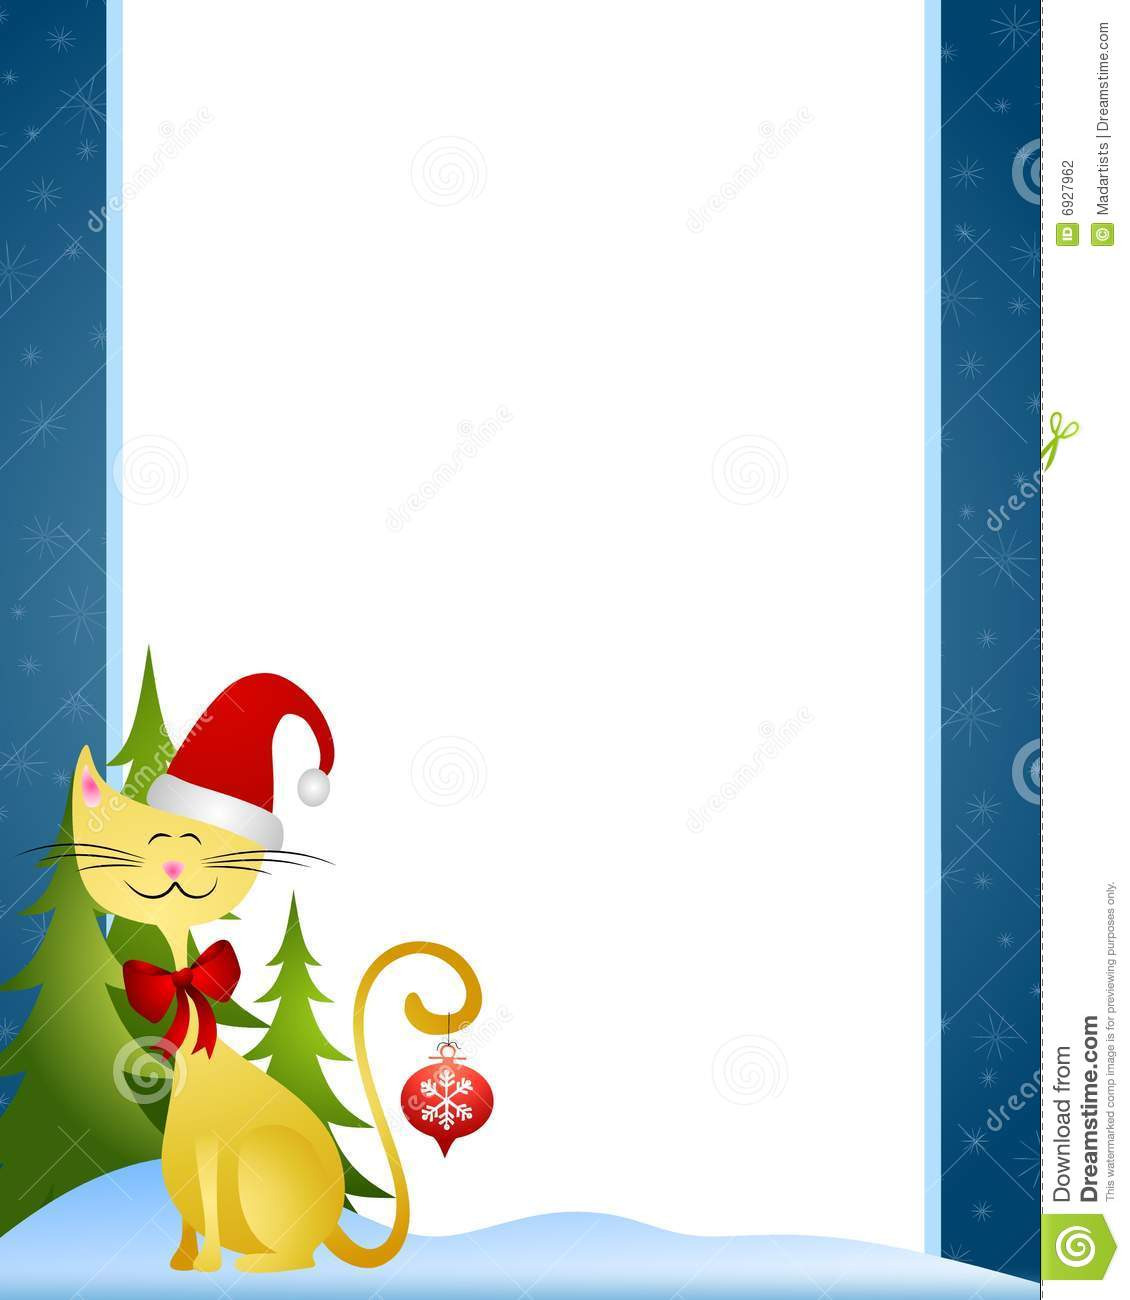 Christmas Border Clipart | Clipart Panda - Free Clipart Images